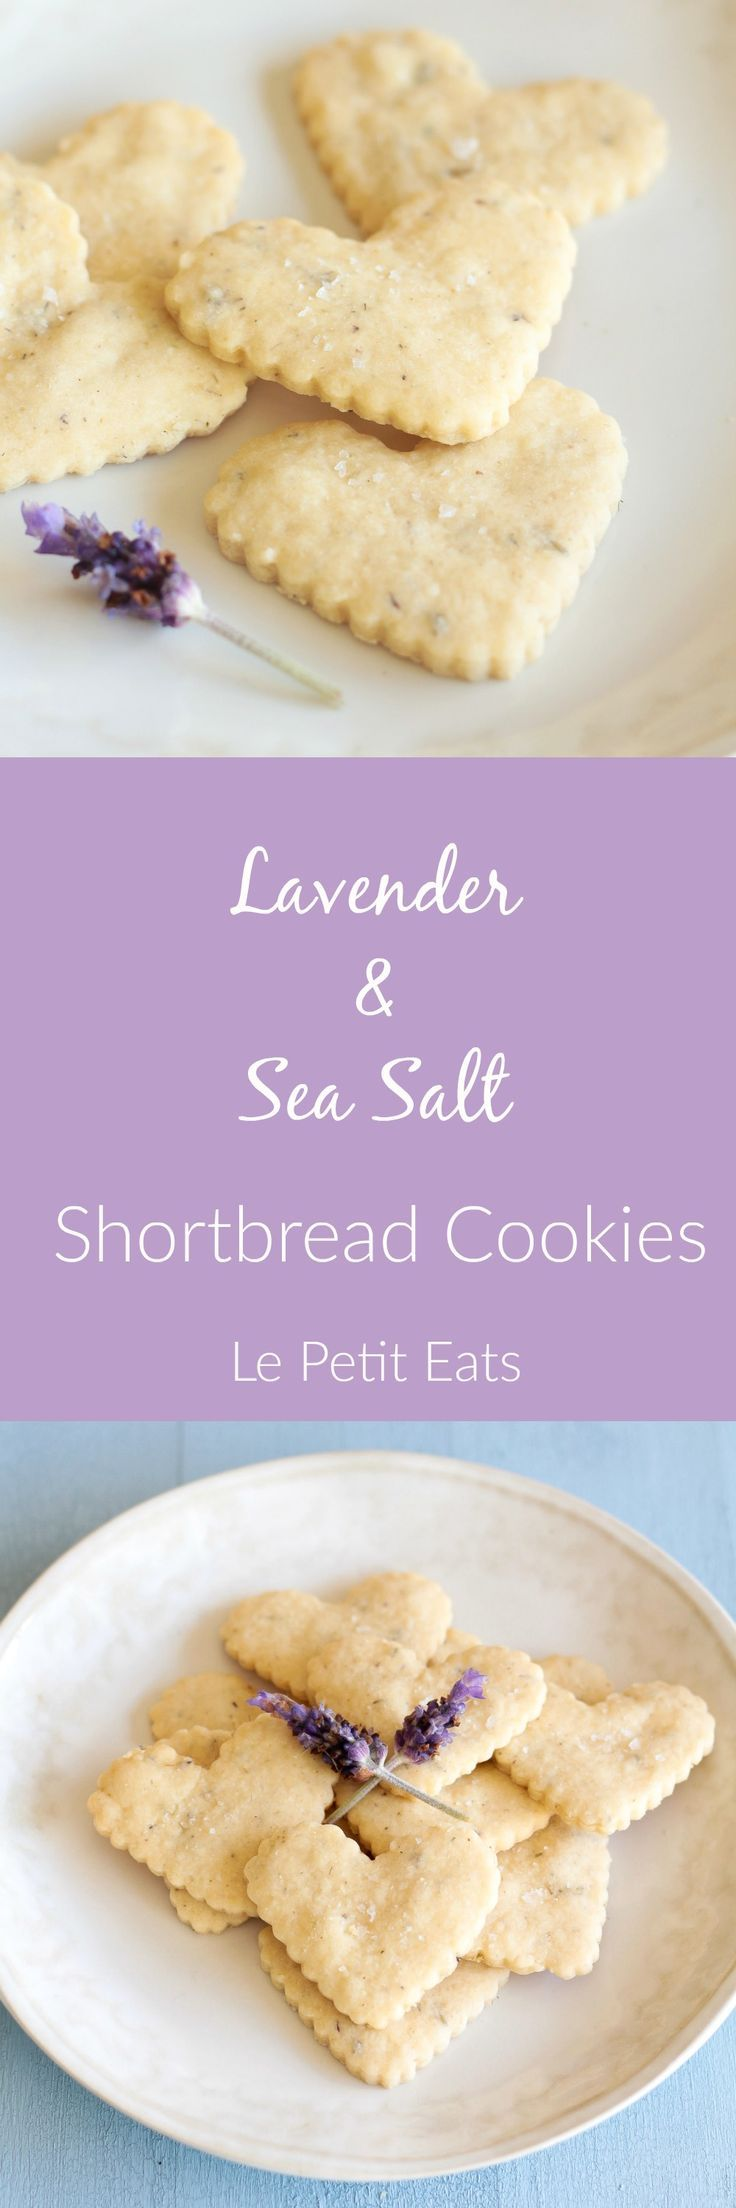 Lavender Sea Salt Shortbread Cookies are classically simple, fragrant treats that you will want to make time and time again.